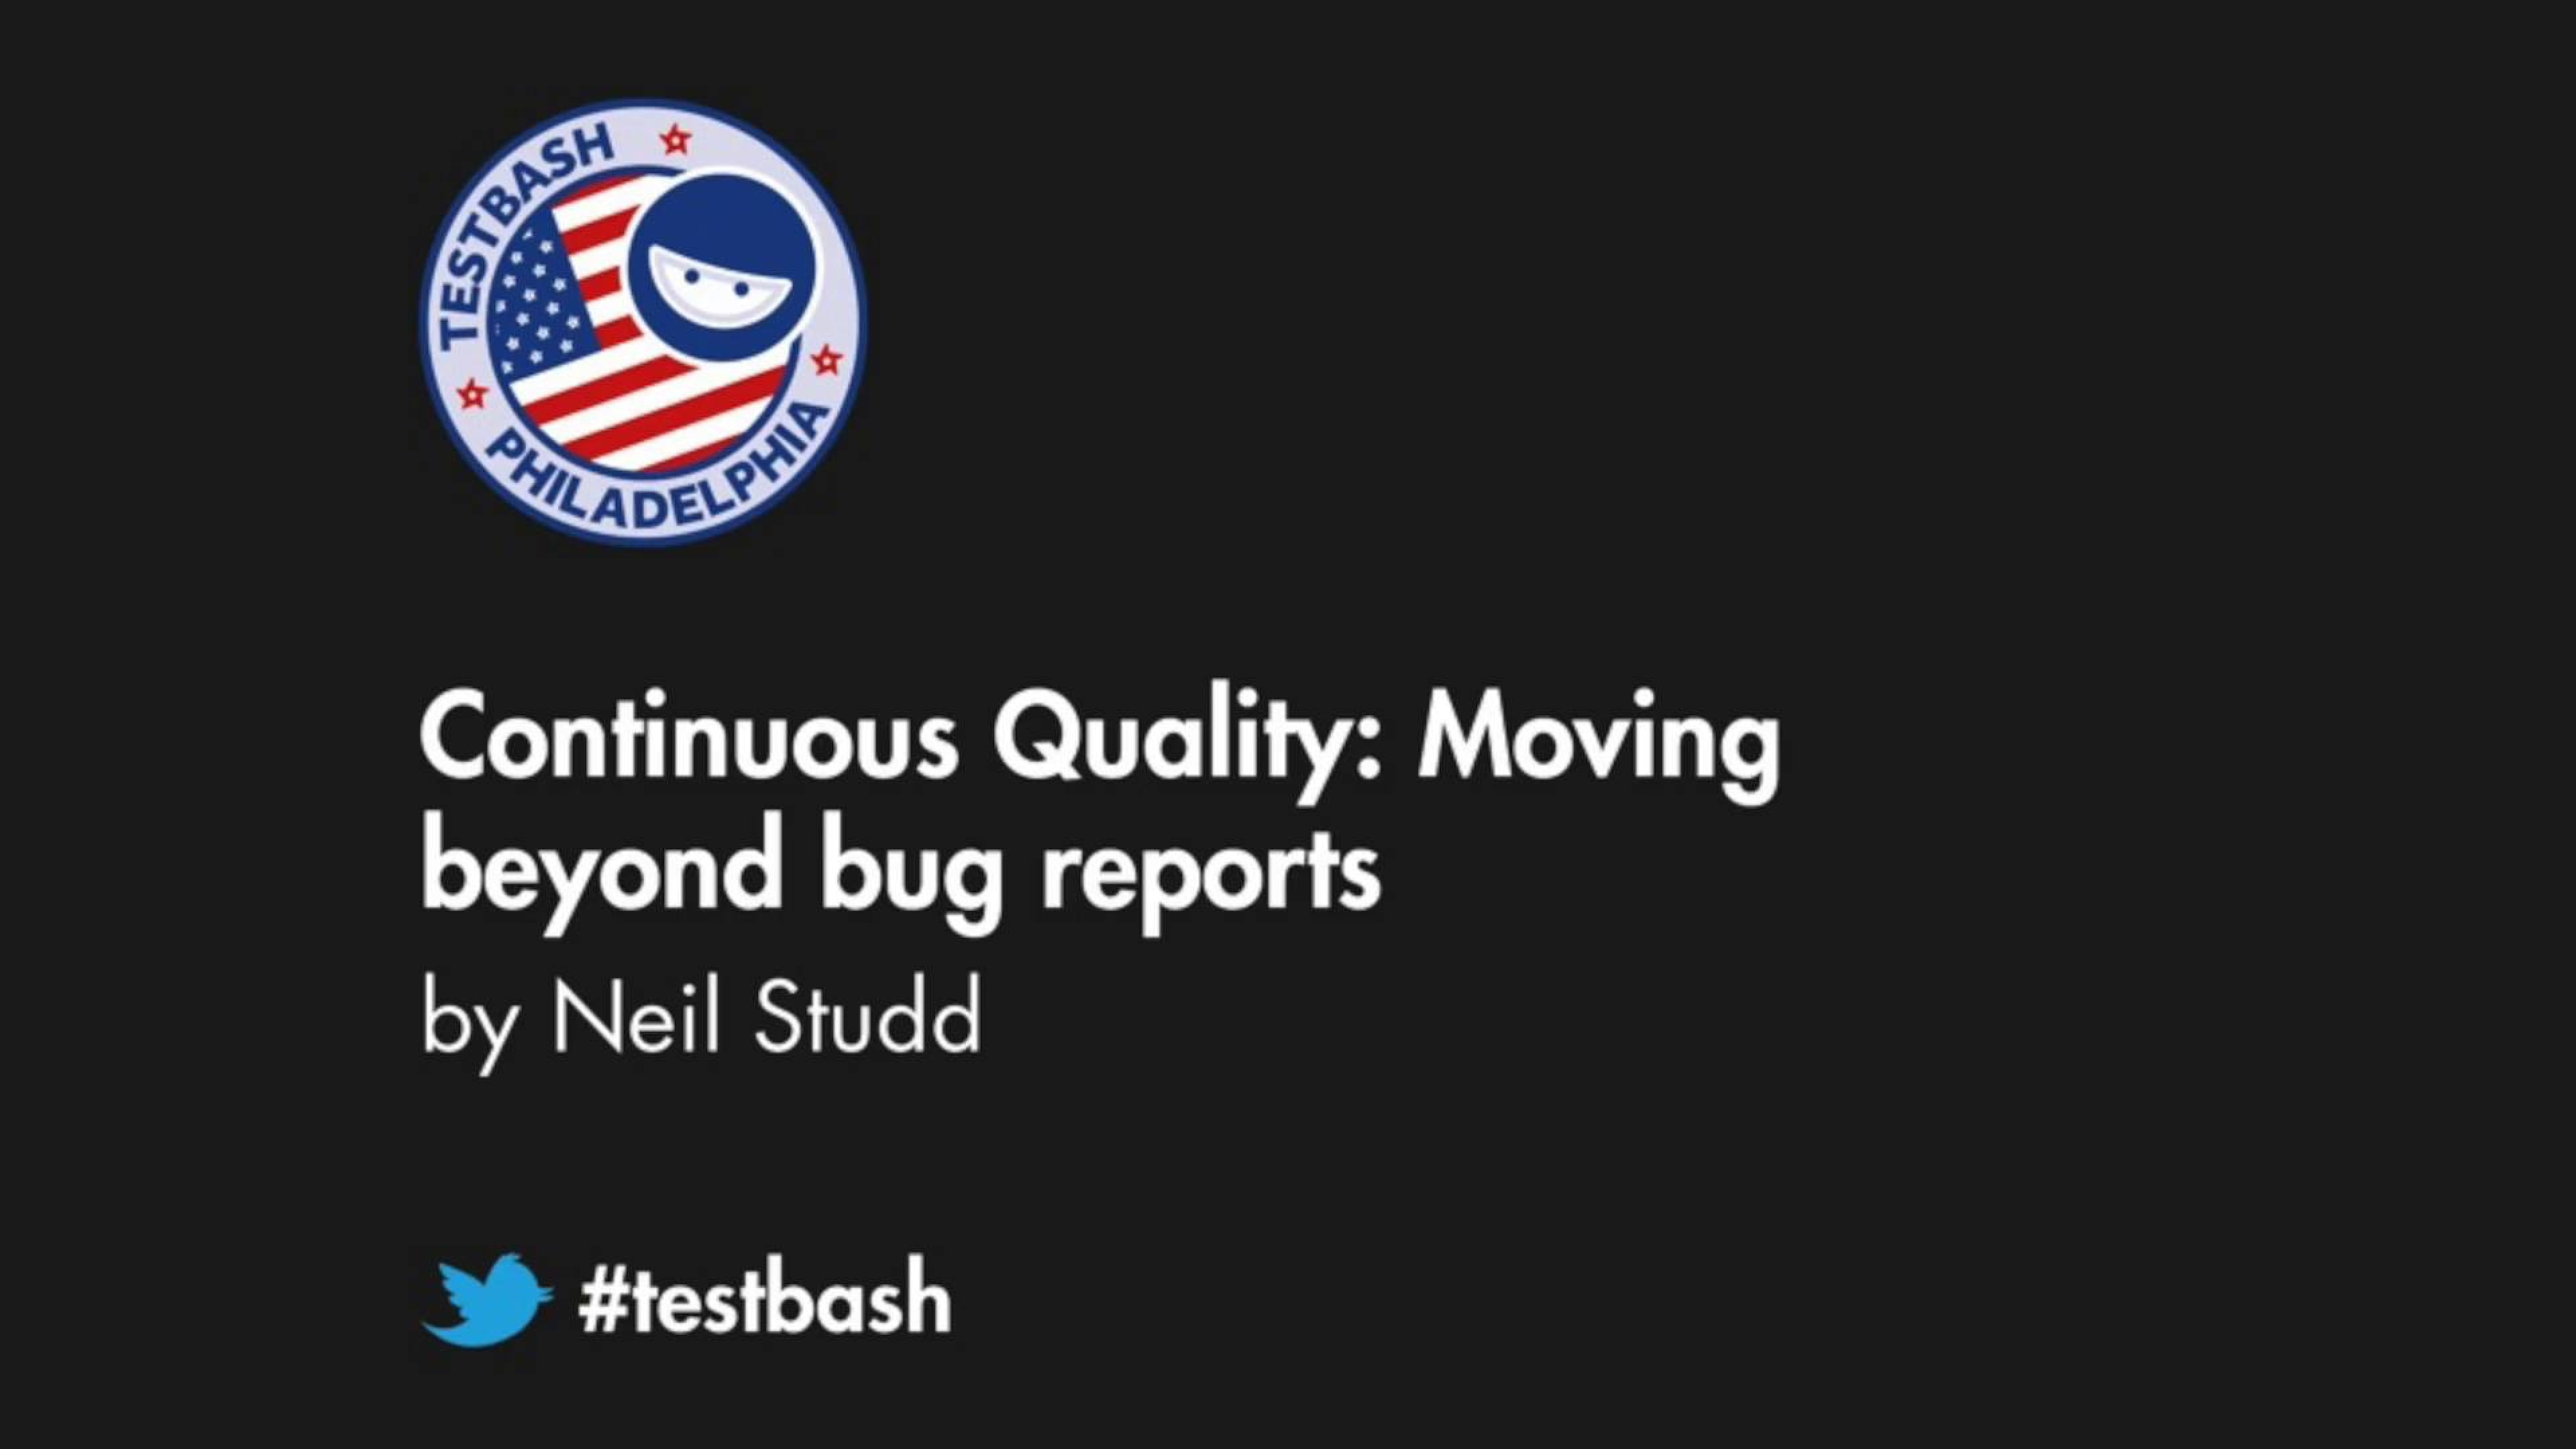 Continuous Quality: Moving Beyond Bug Reports - Neil Studd